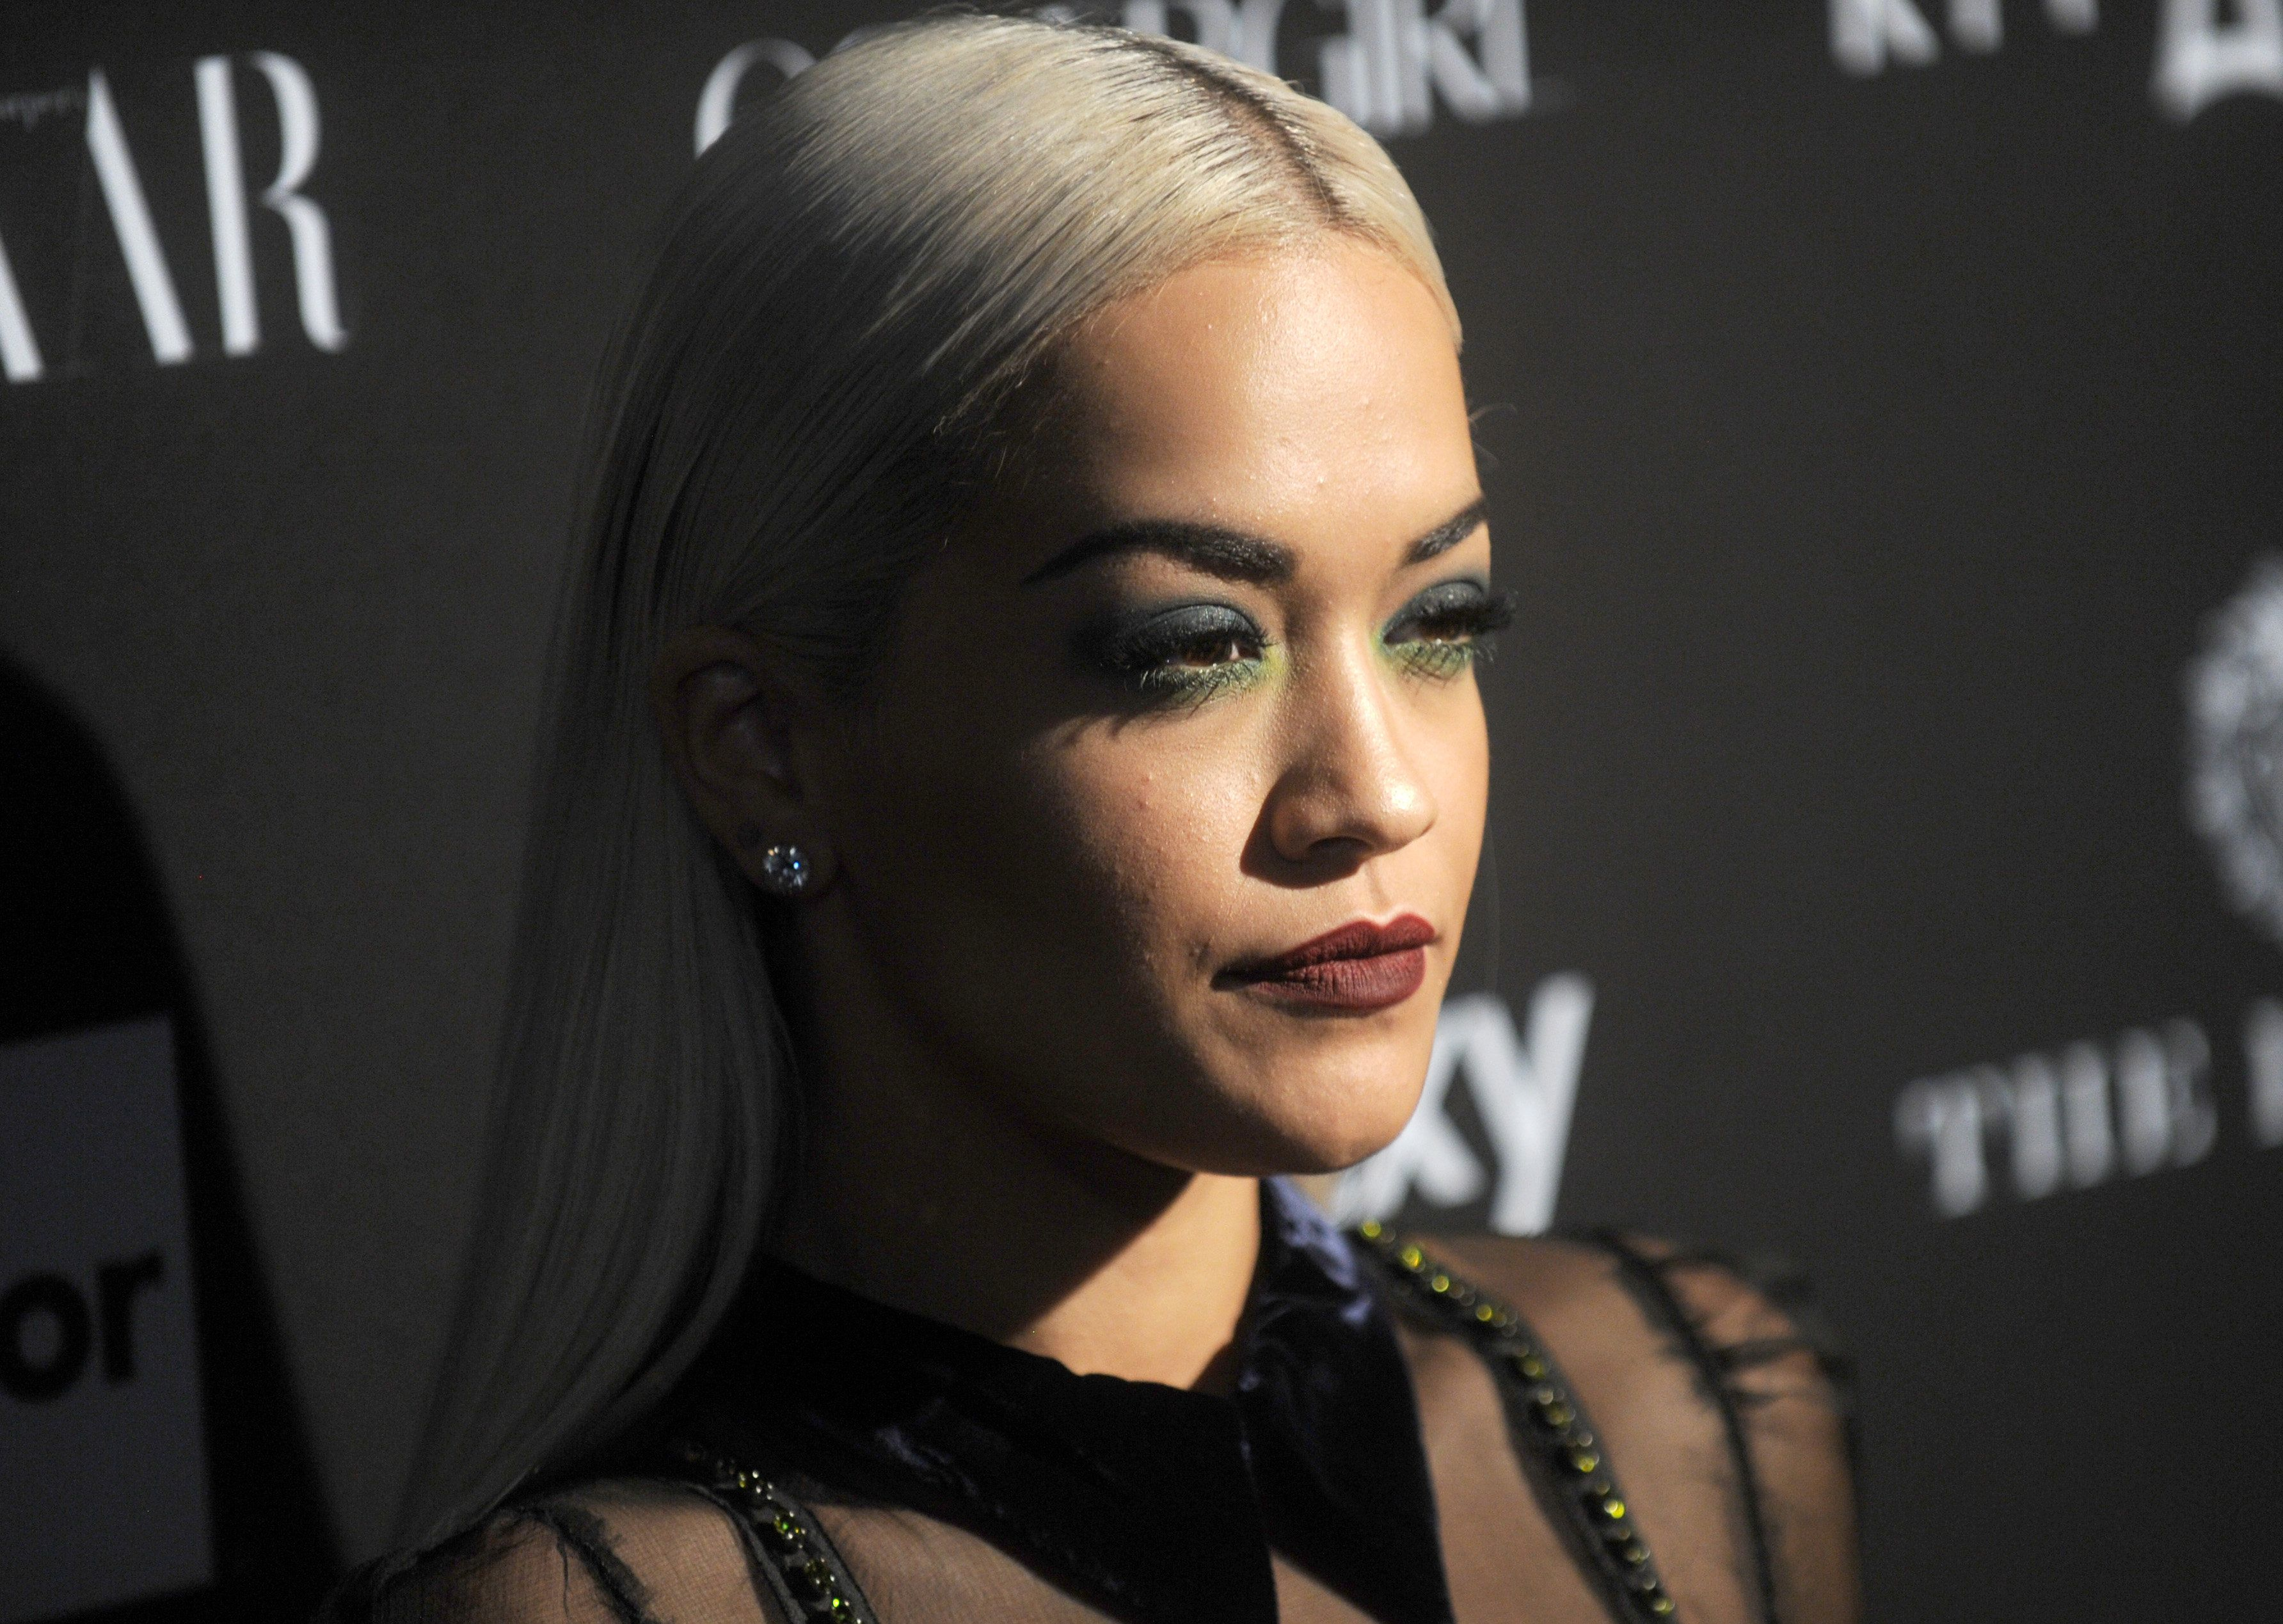 Rita Ora at the Harper's Bazaar Icons event at The Plaza Hotel in New York City, NY, USA, on September 16, 2015.